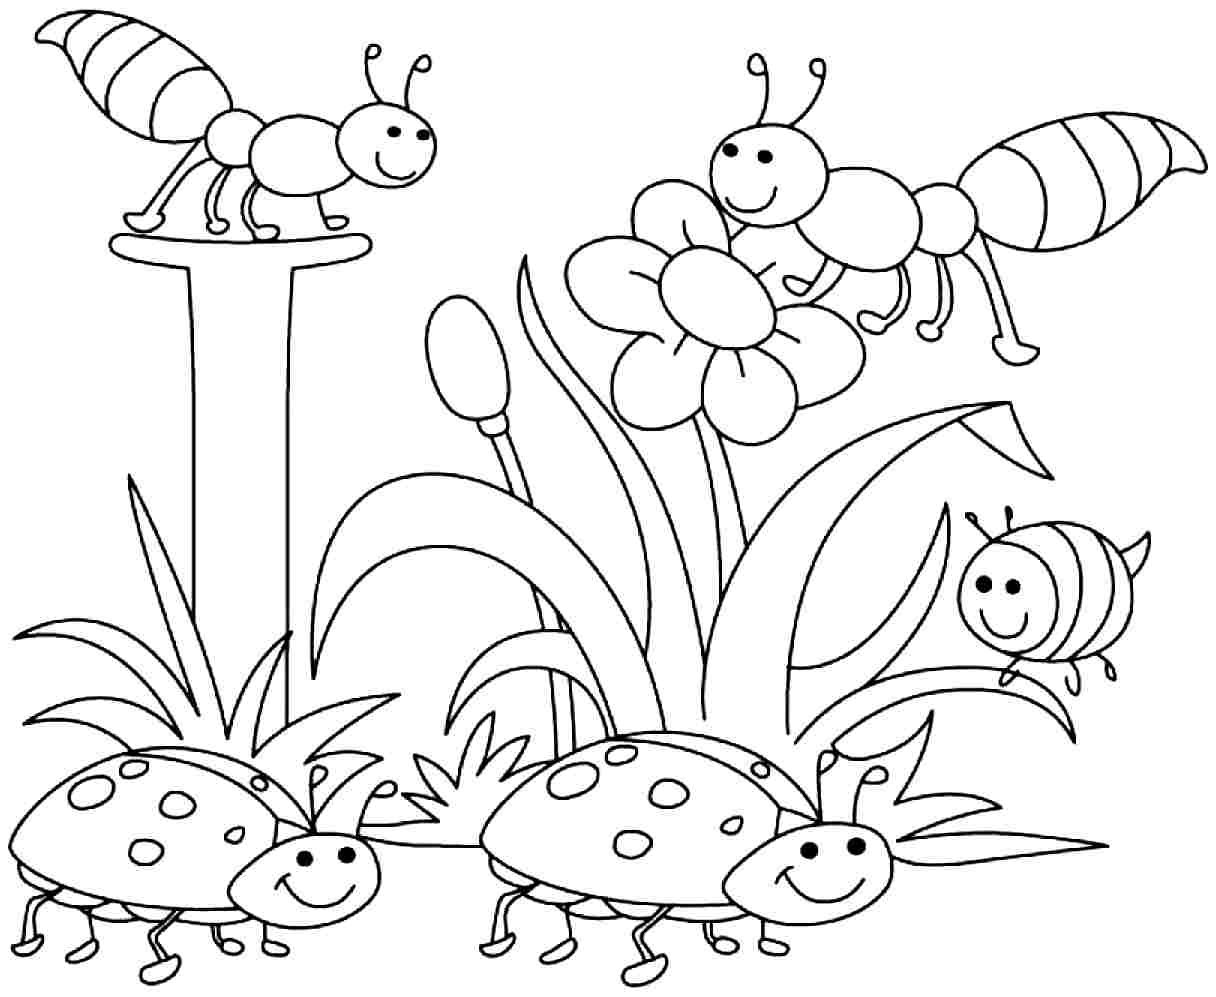 Free Spring Coloring Pages Download Free Clip Art Free Clip Art On Clipart Library